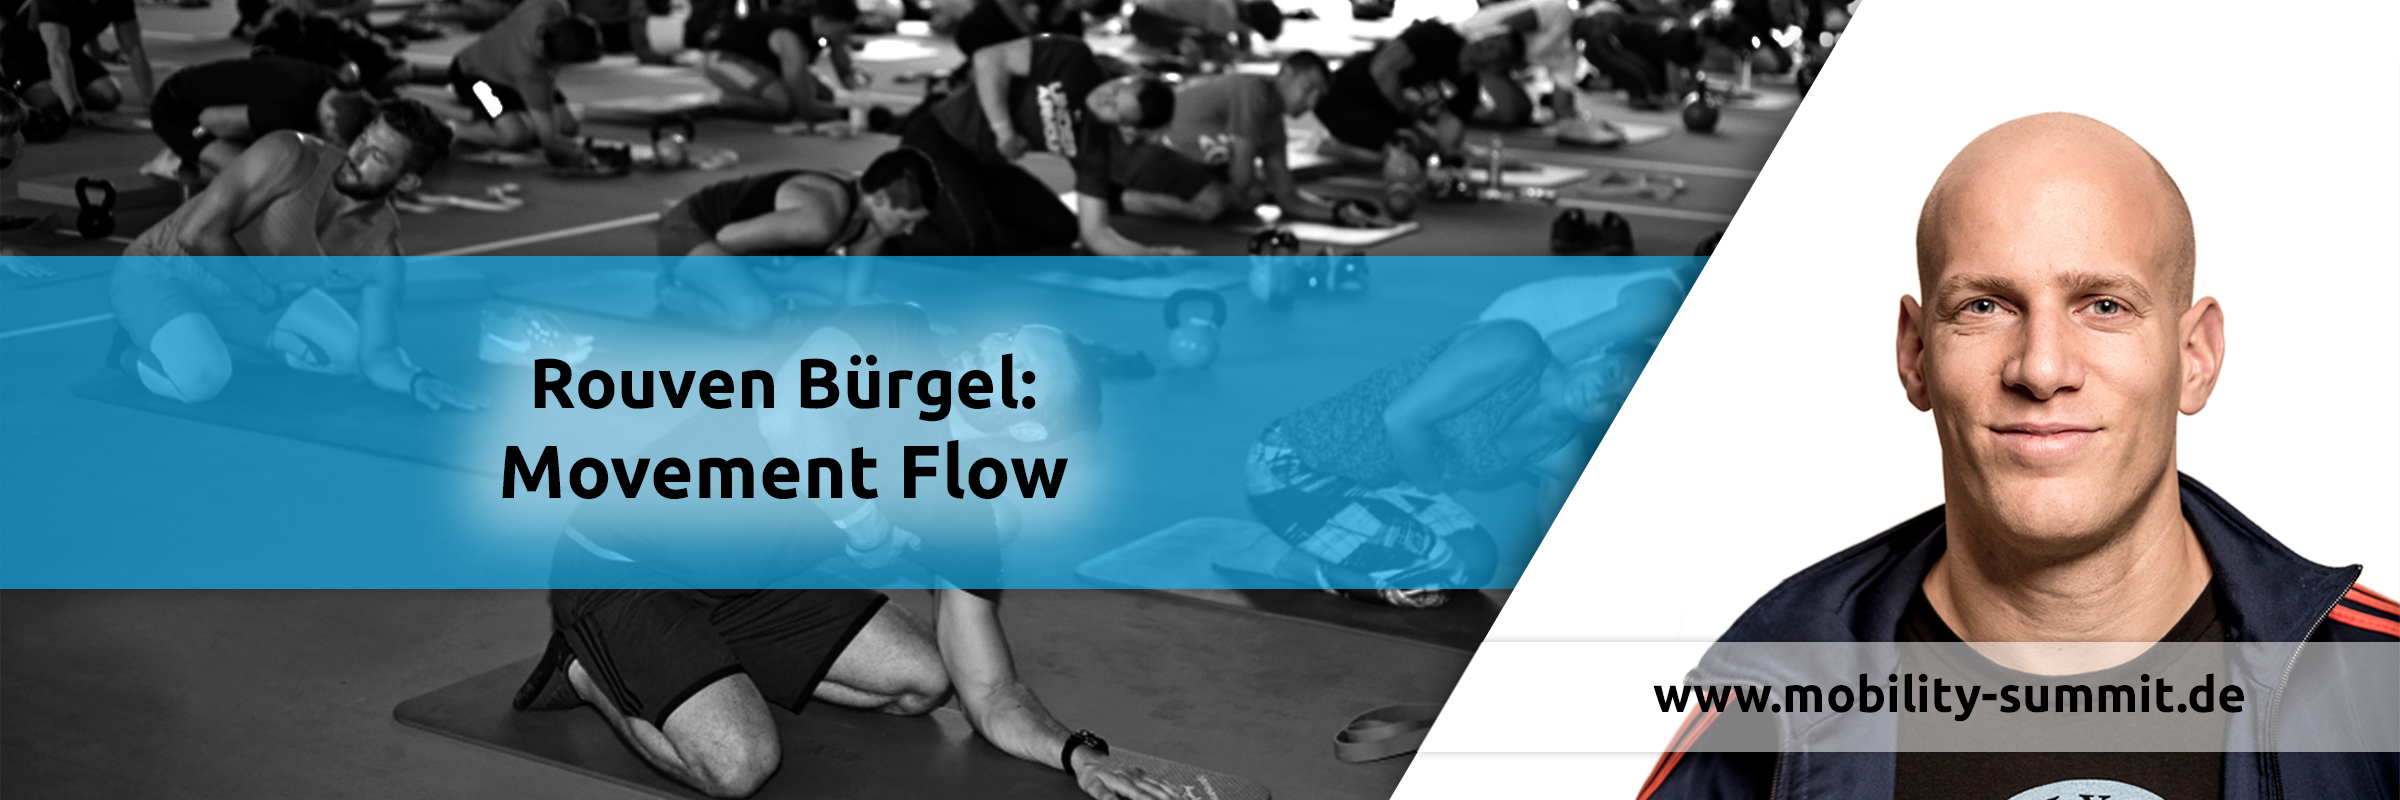 Rouven Buergel with Movement Flow